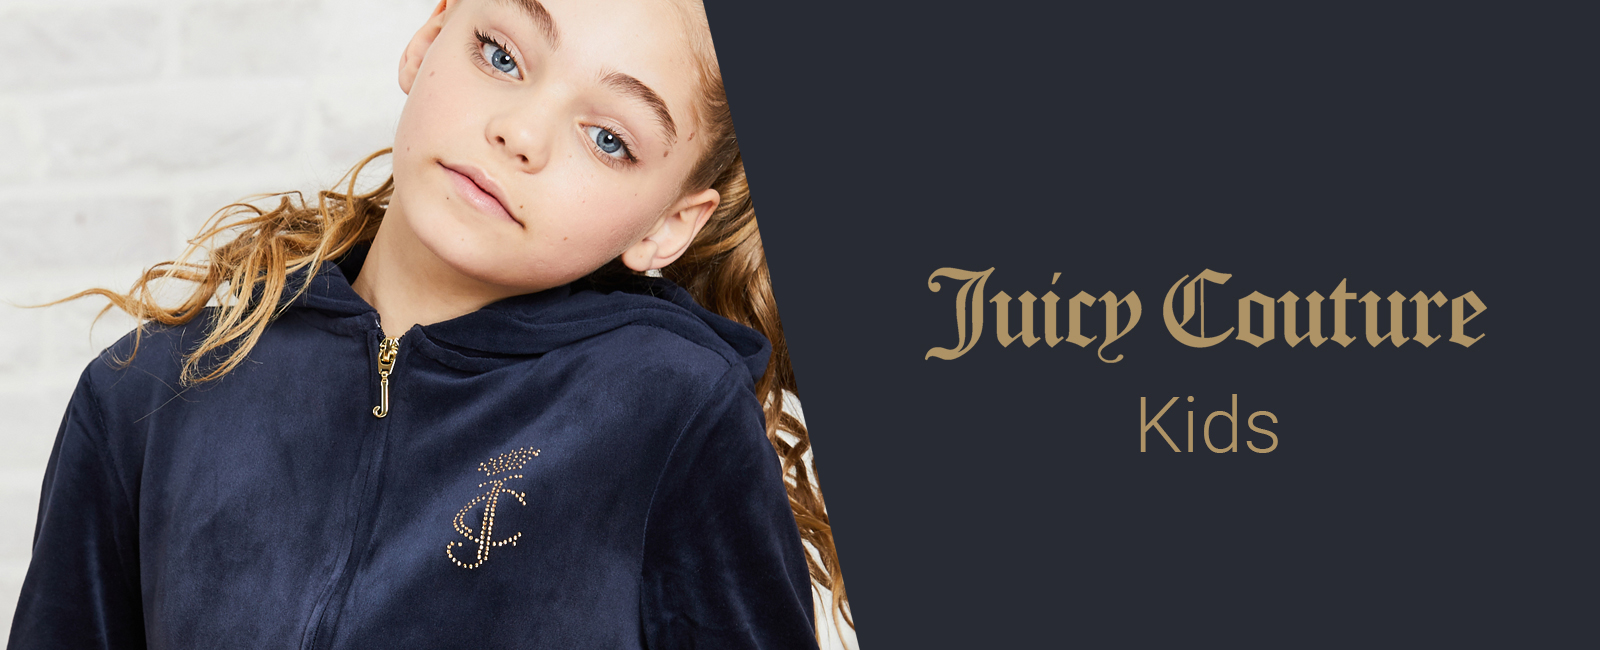 Juicy Couture Kids